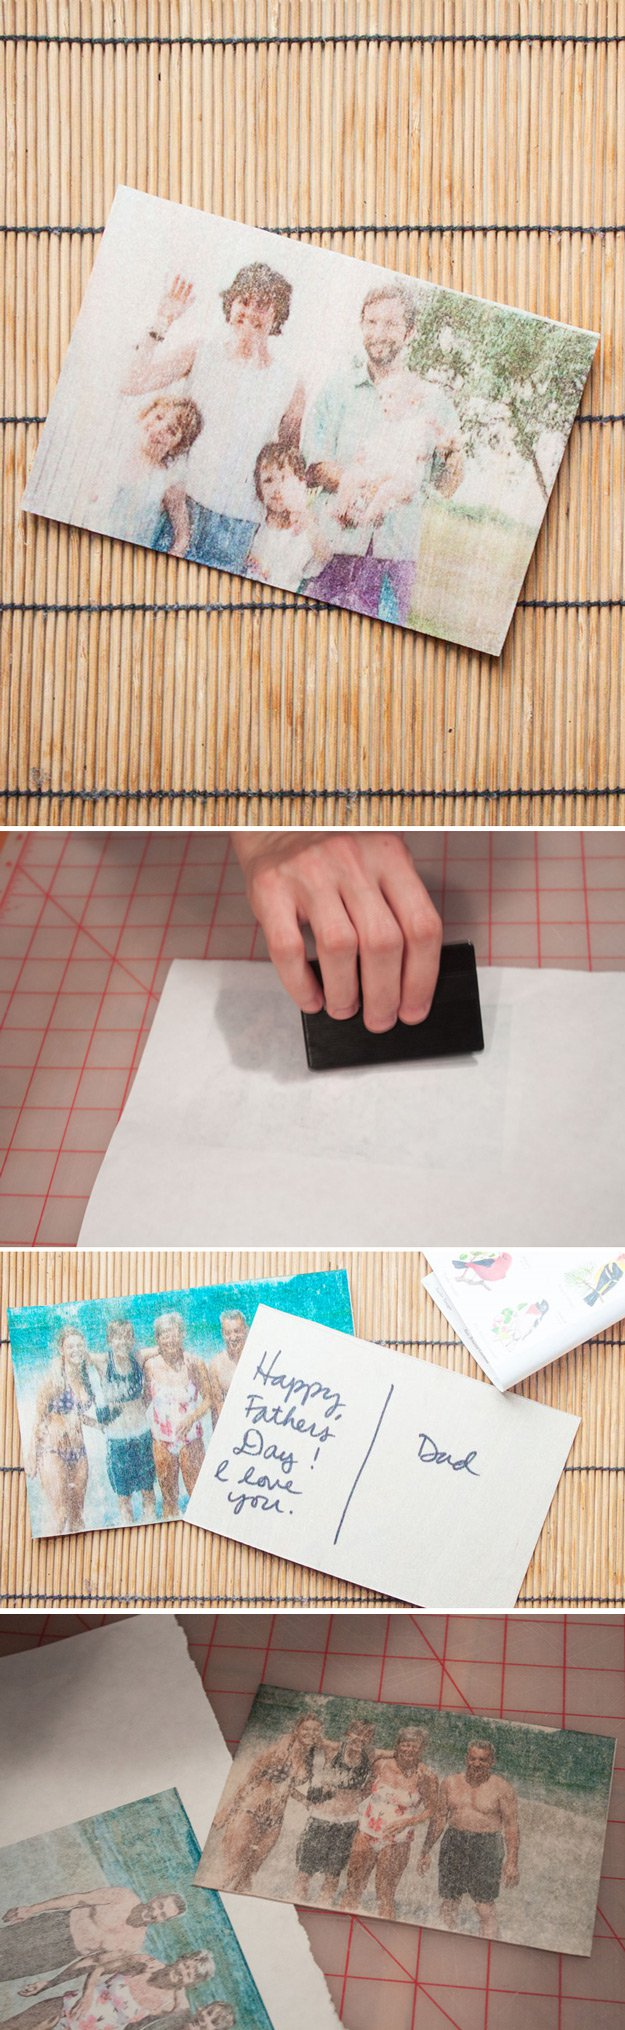 Easy DIY Handmade Father's Day Card Ideas | http://www.foliver.com/diy/21-diy-ideas-for-fathers-day-cards/